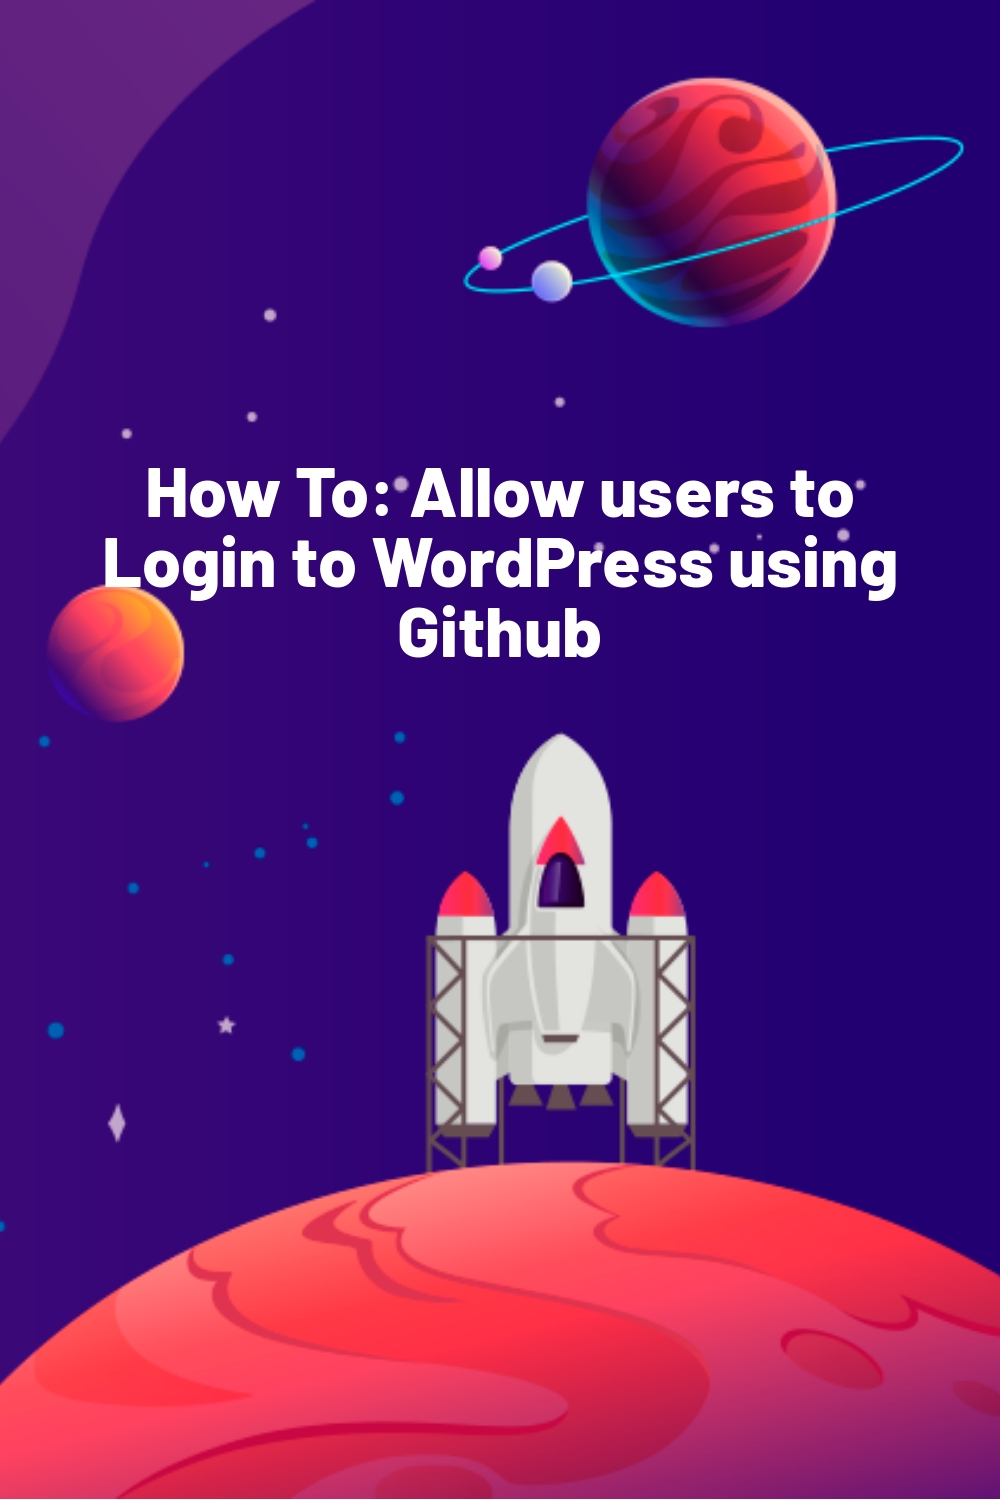 How To: Allow users to Login to WordPress using Github